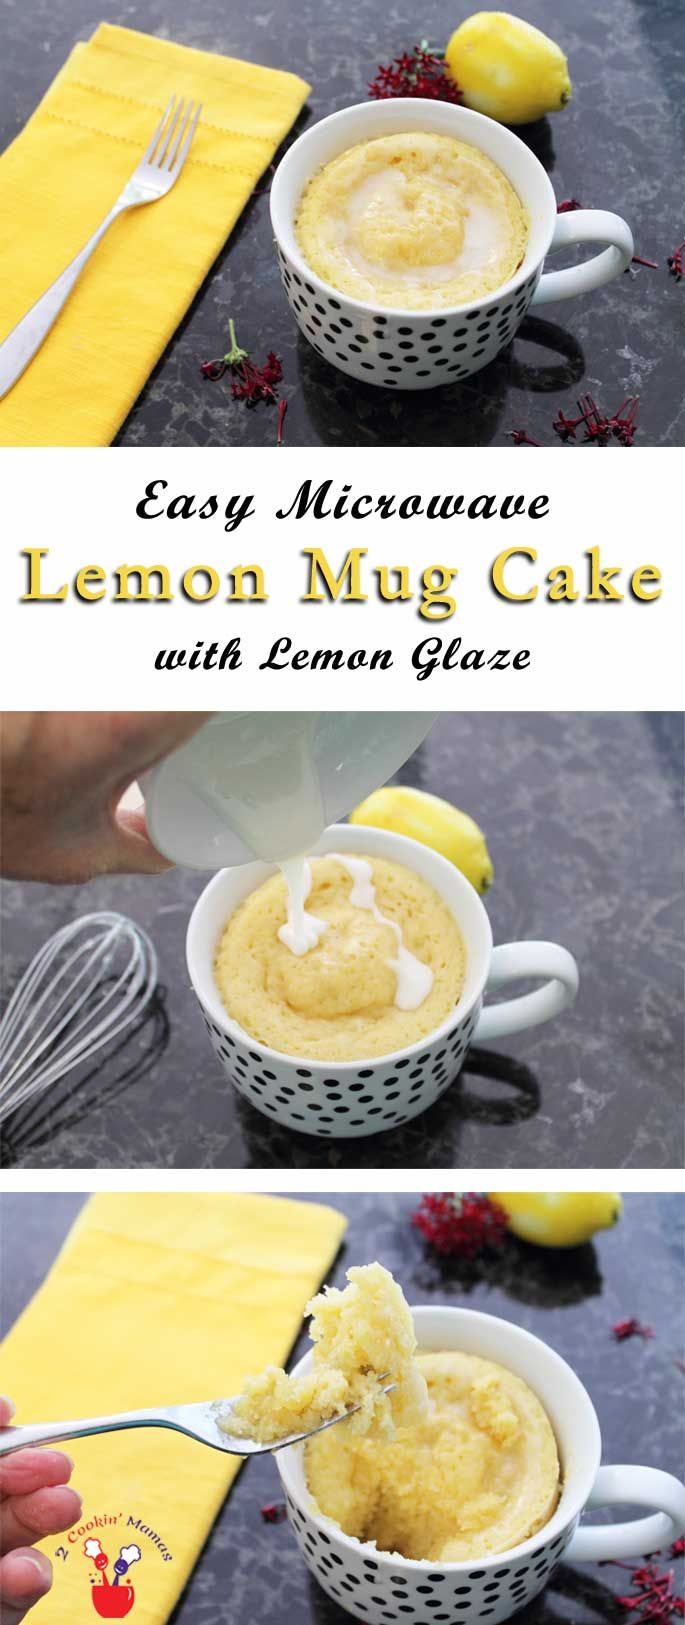 In the mood for dessert? Right away! Just whip up this sweet lemon mug cake. The recipe takes only 2 minutes start to finish & voila - instant dessert! via @2CookinMamas